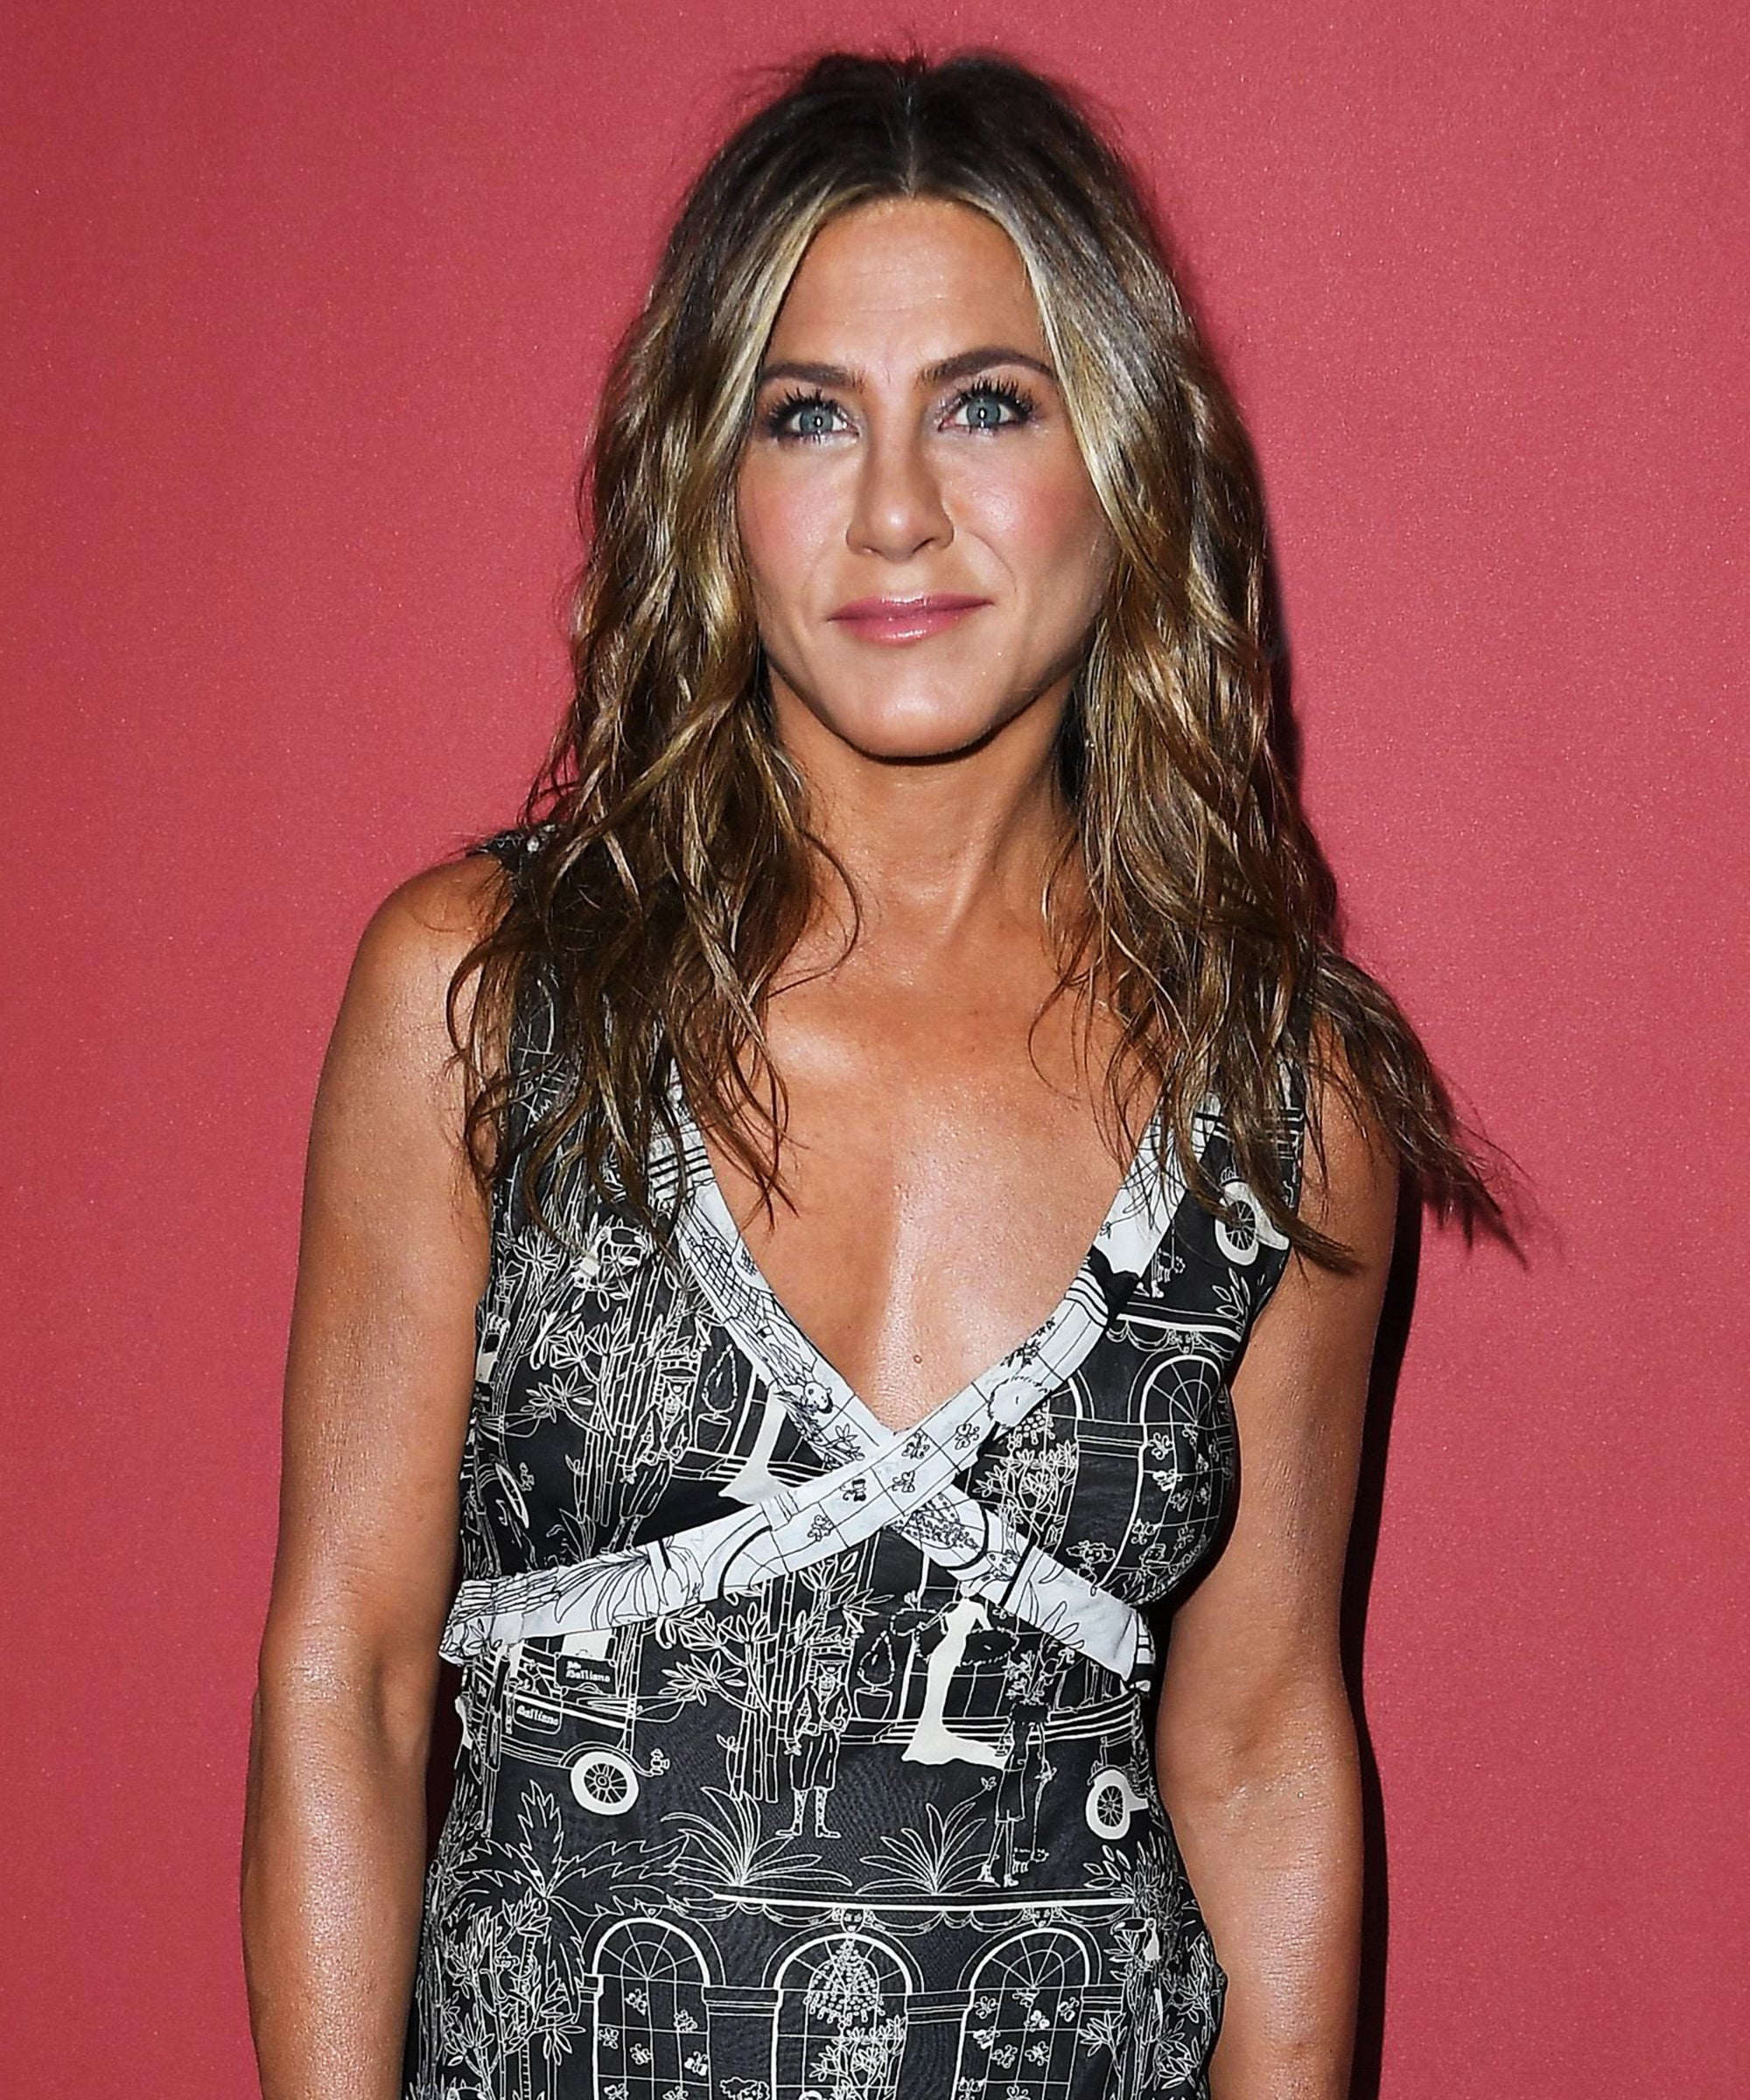 Jennifer Aniston Hosted A Very Unconventional Friendsgiving